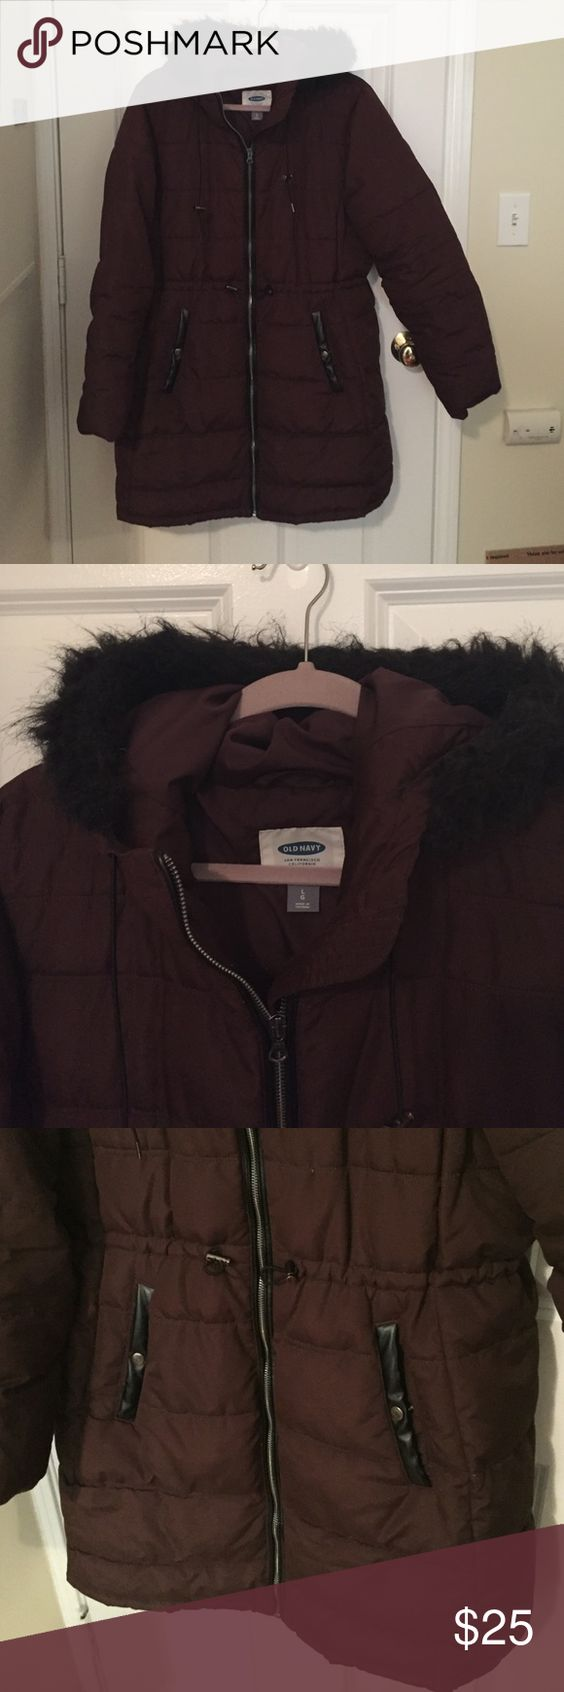 Old navy coat. Old navy coat feather filled. Burgundy color, warm, hits passed butt to about mid thigh. Faux fur hood (not removable faux fur) has two pockets. Design is quilted with a stretchy cinched waist. Worn for a few months last winter. EUC. Old Navy Jackets & Coats Puffers